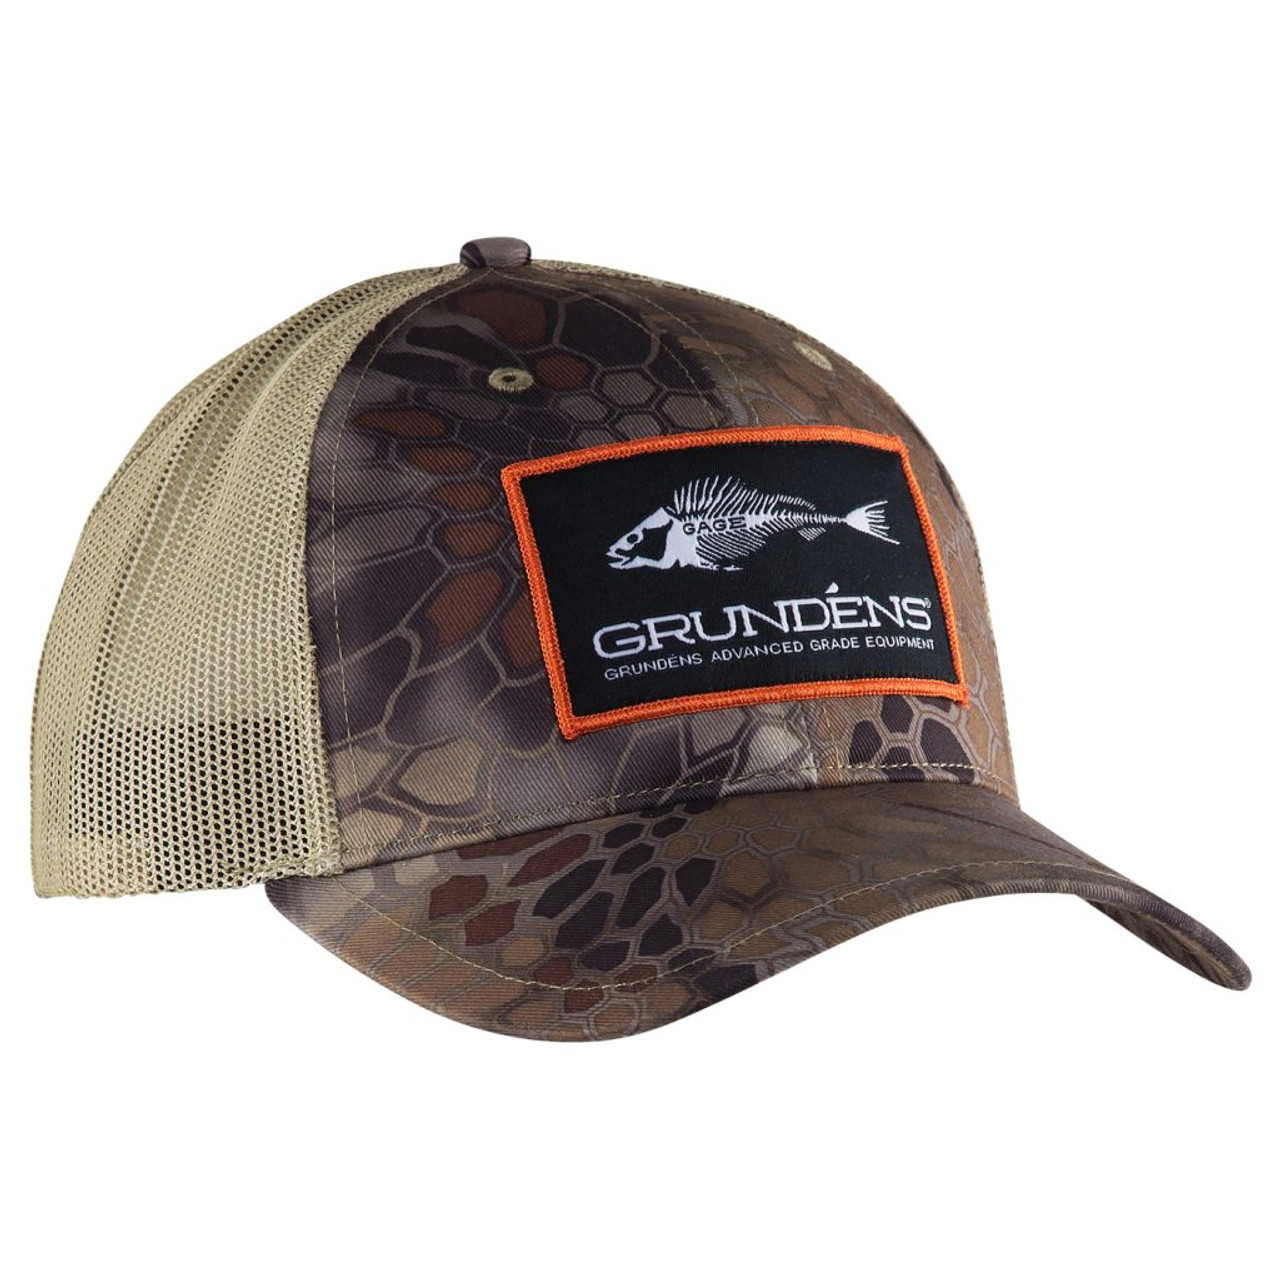 fc512720a Grundens Trucker Cap Eat Fish Wear Grundens Kryptek Highlander Camo